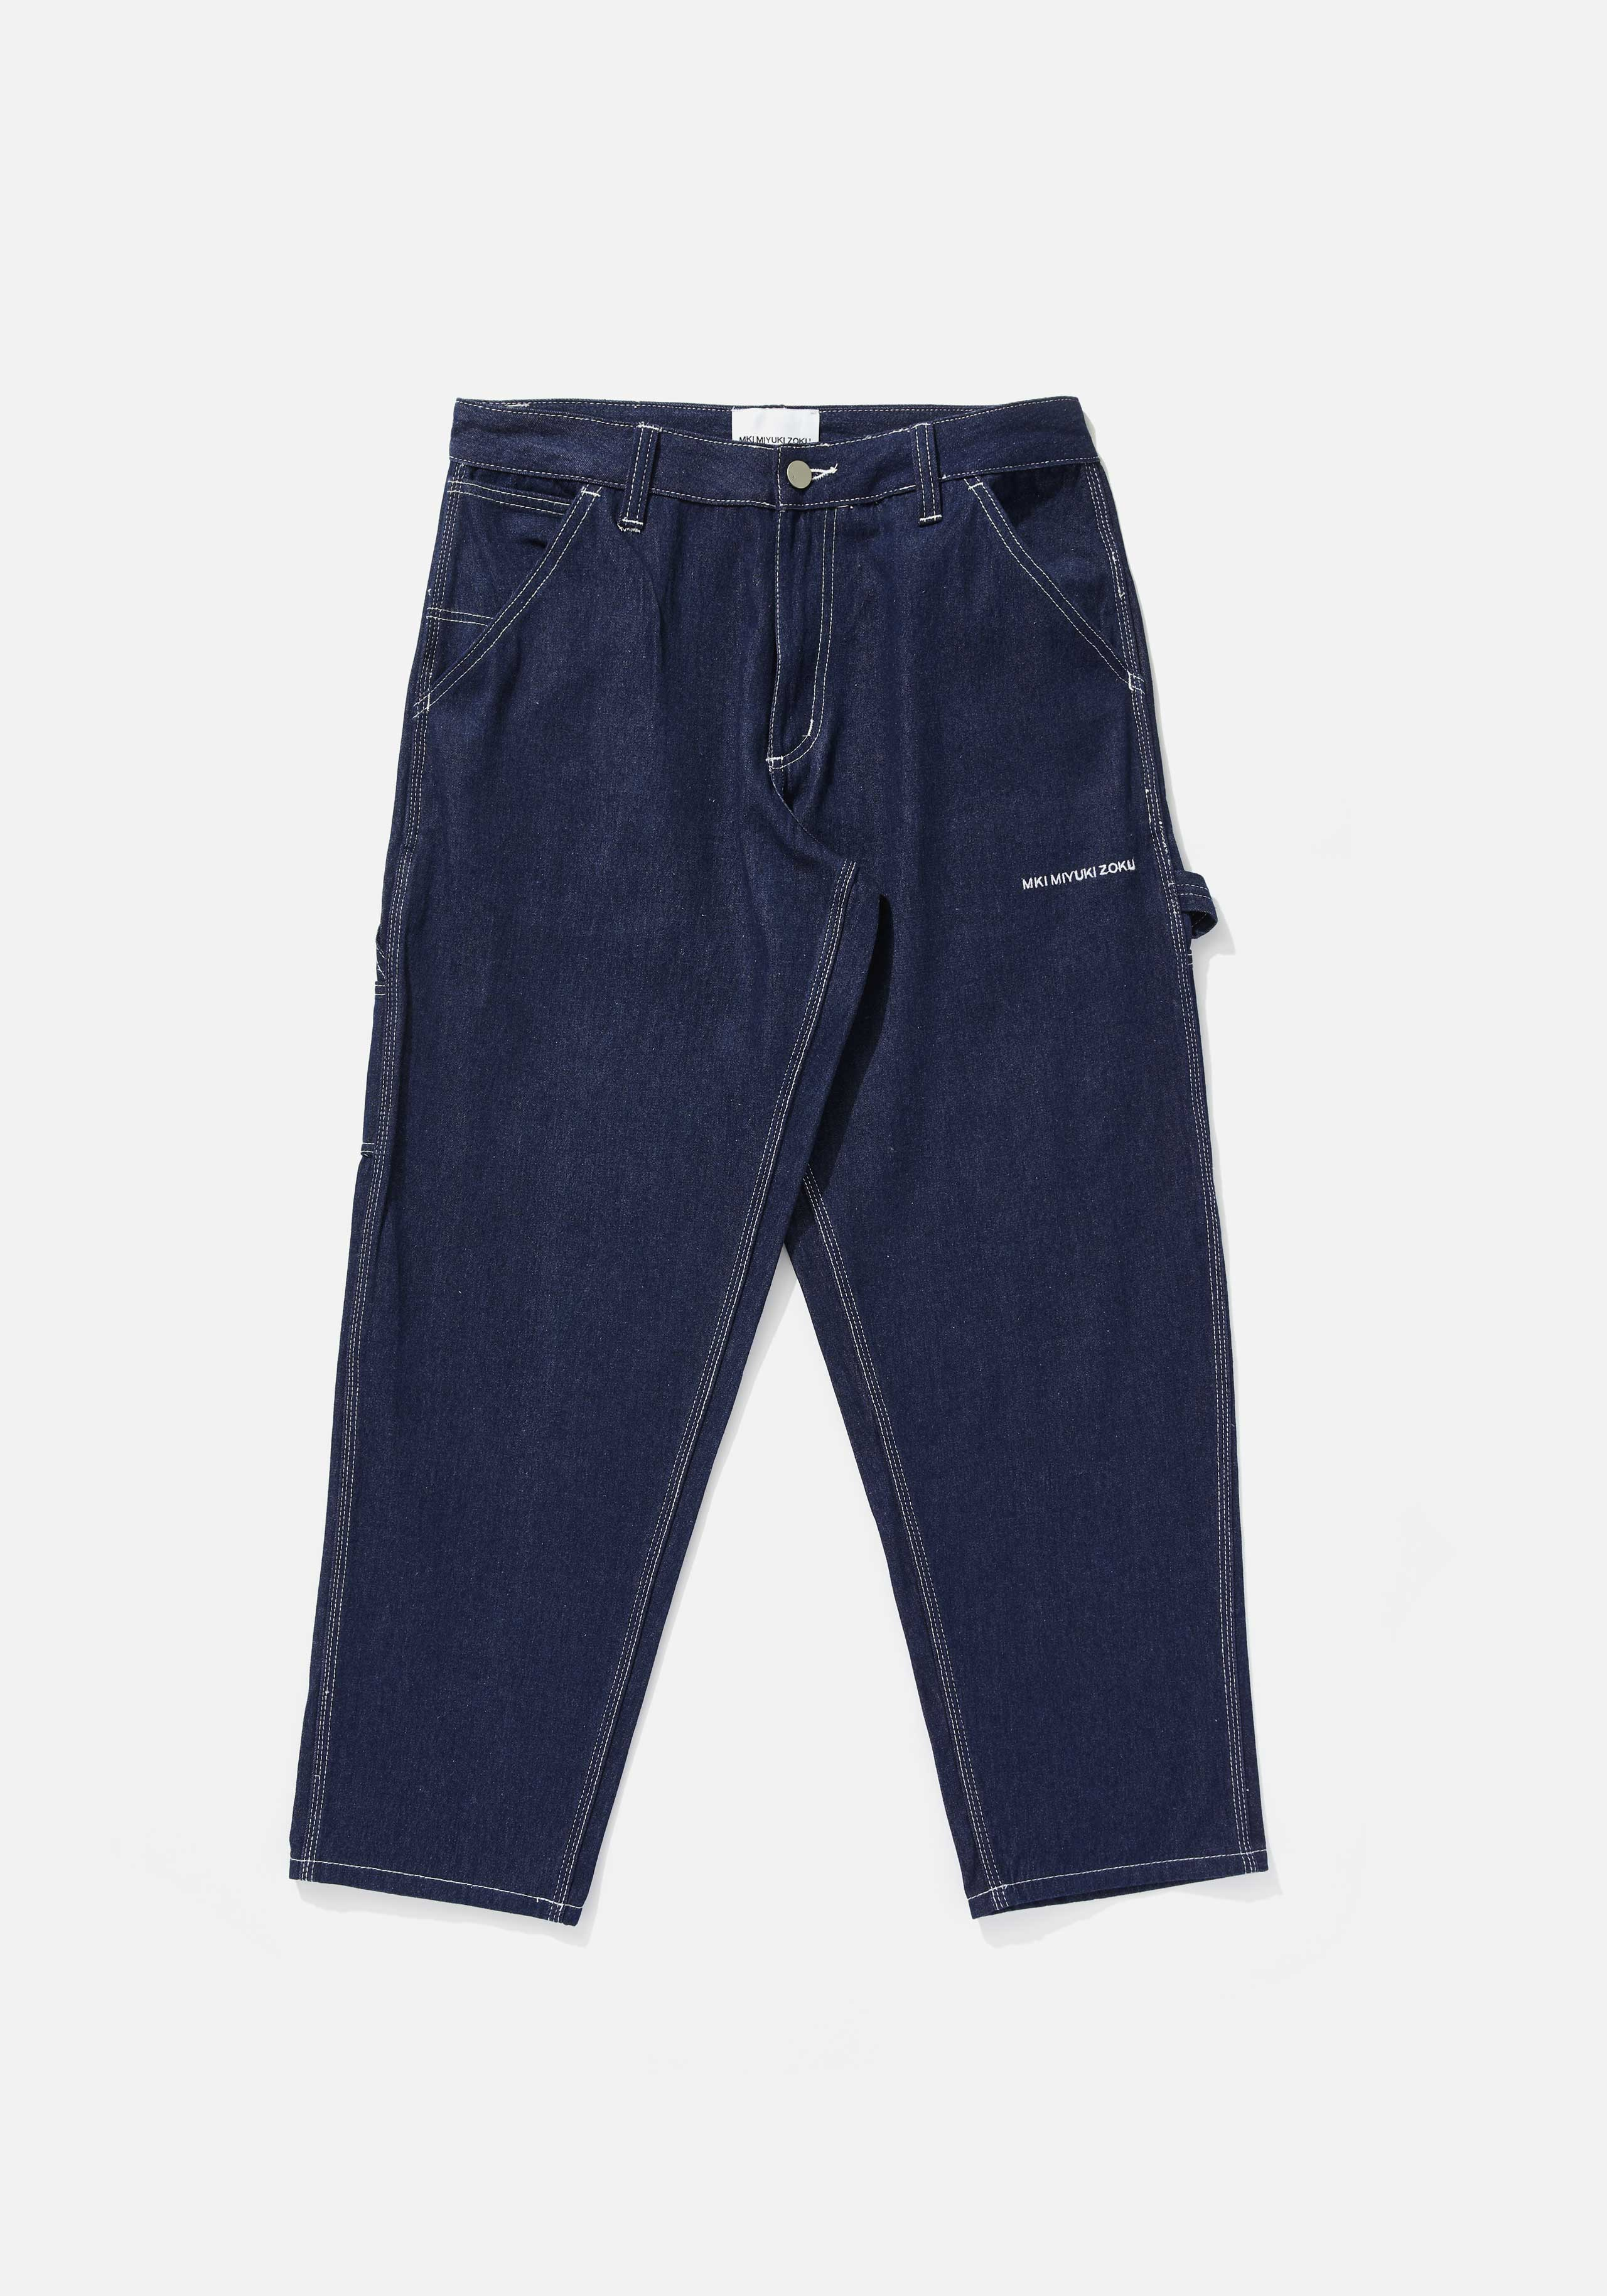 mki denim carpenter jeans 1